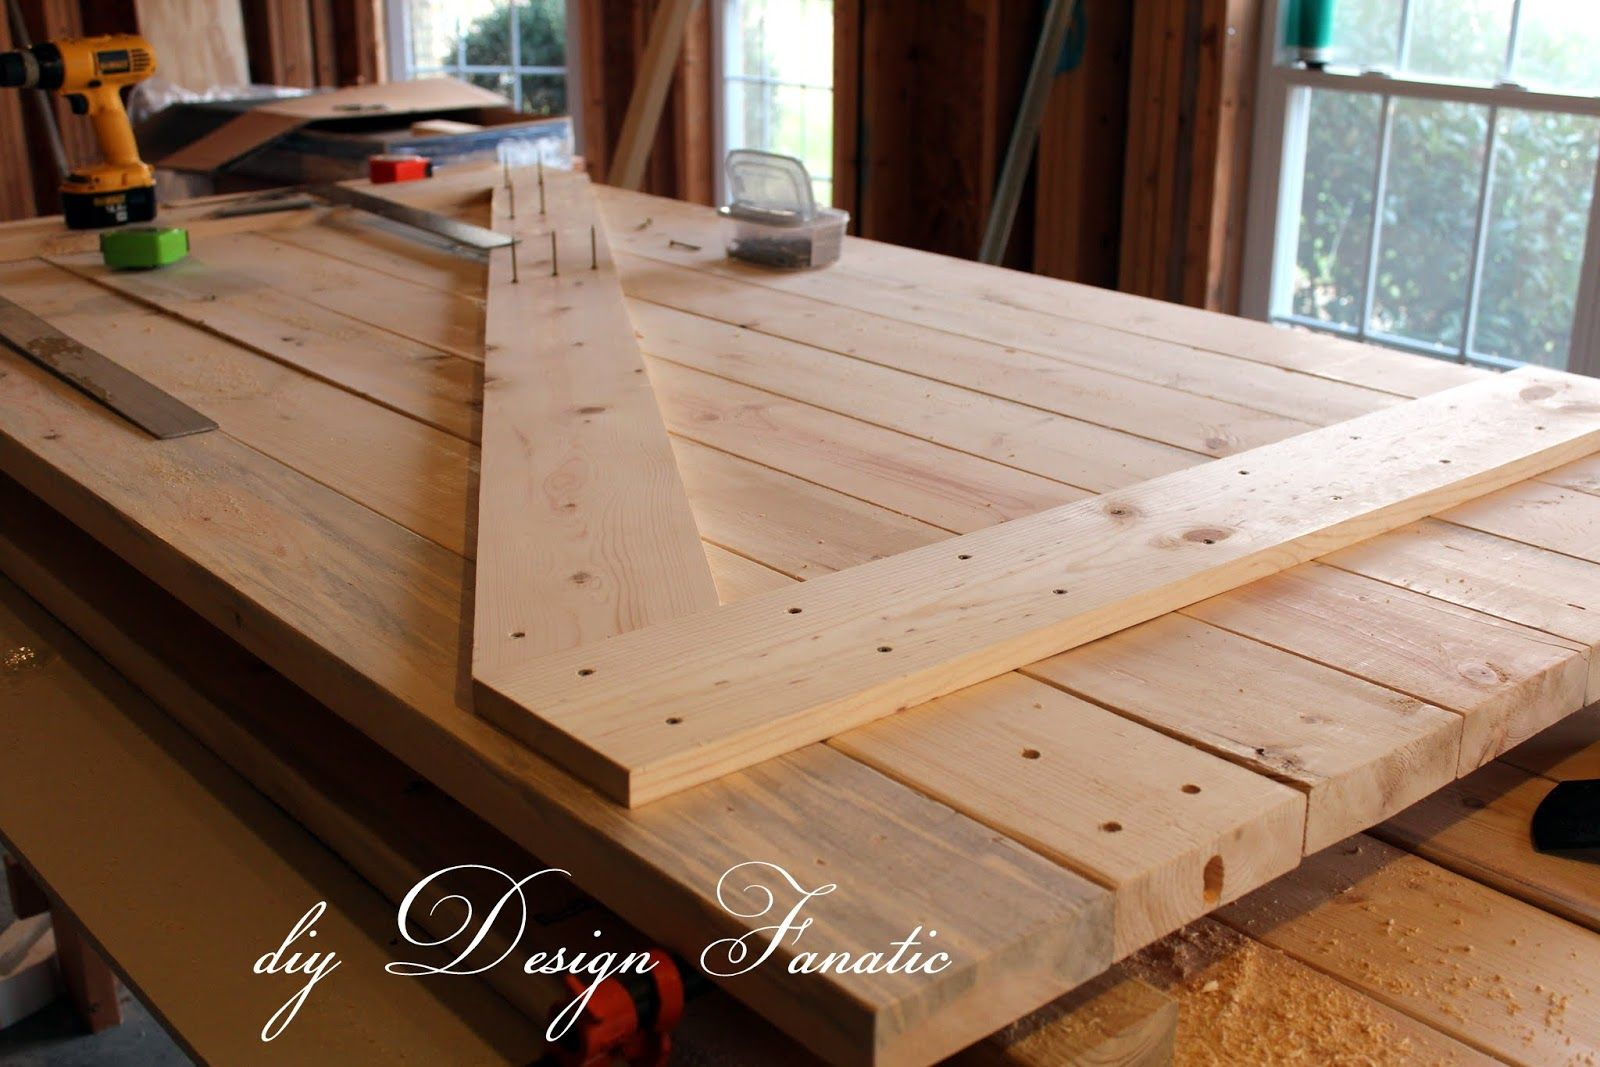 build your own barn doors | wood working | pinterest | hütten, türen